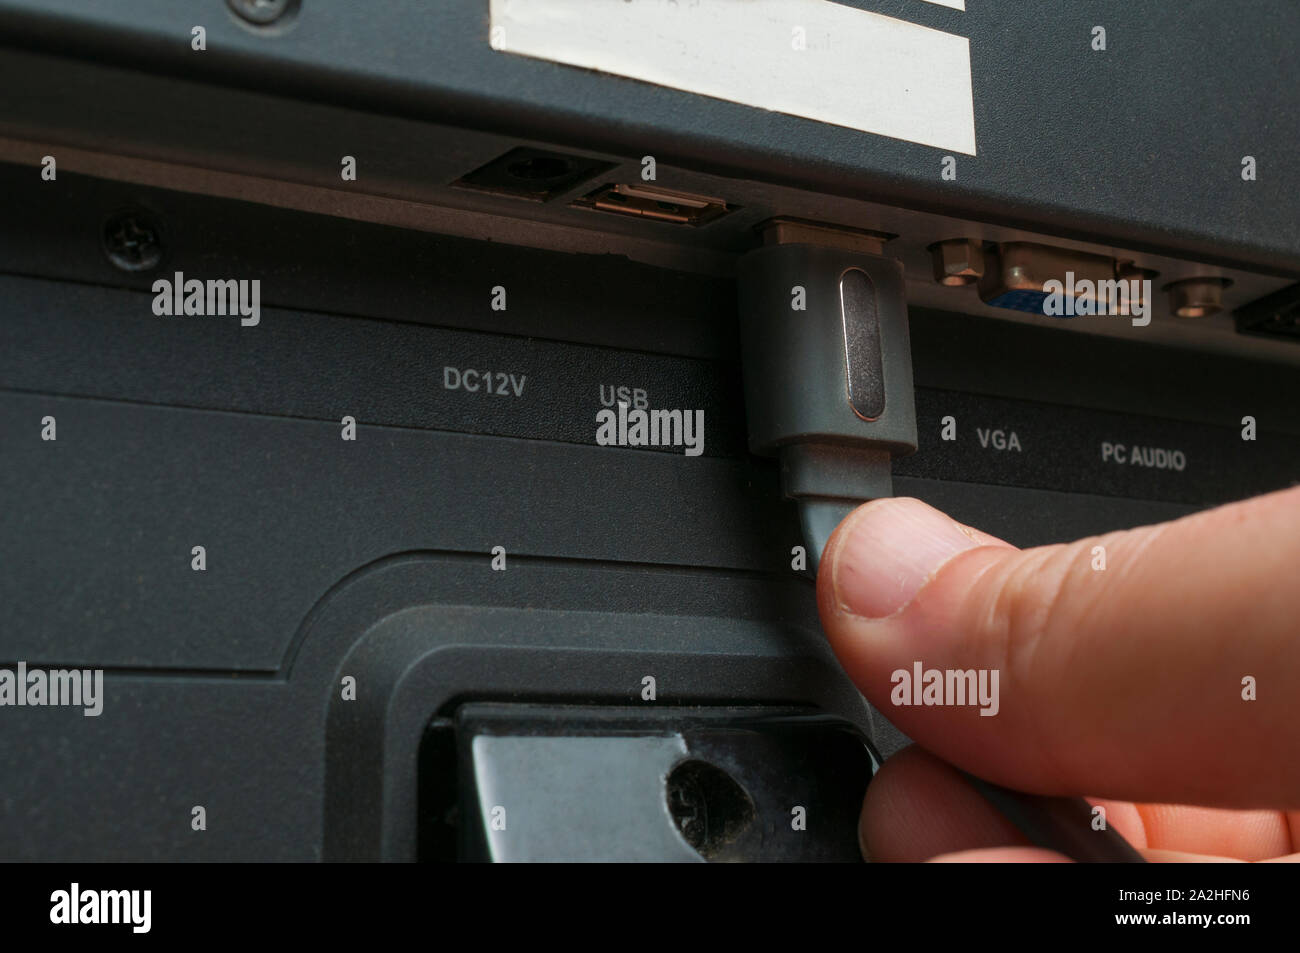 Man plug a hdmi cable in a tv Stock Photo